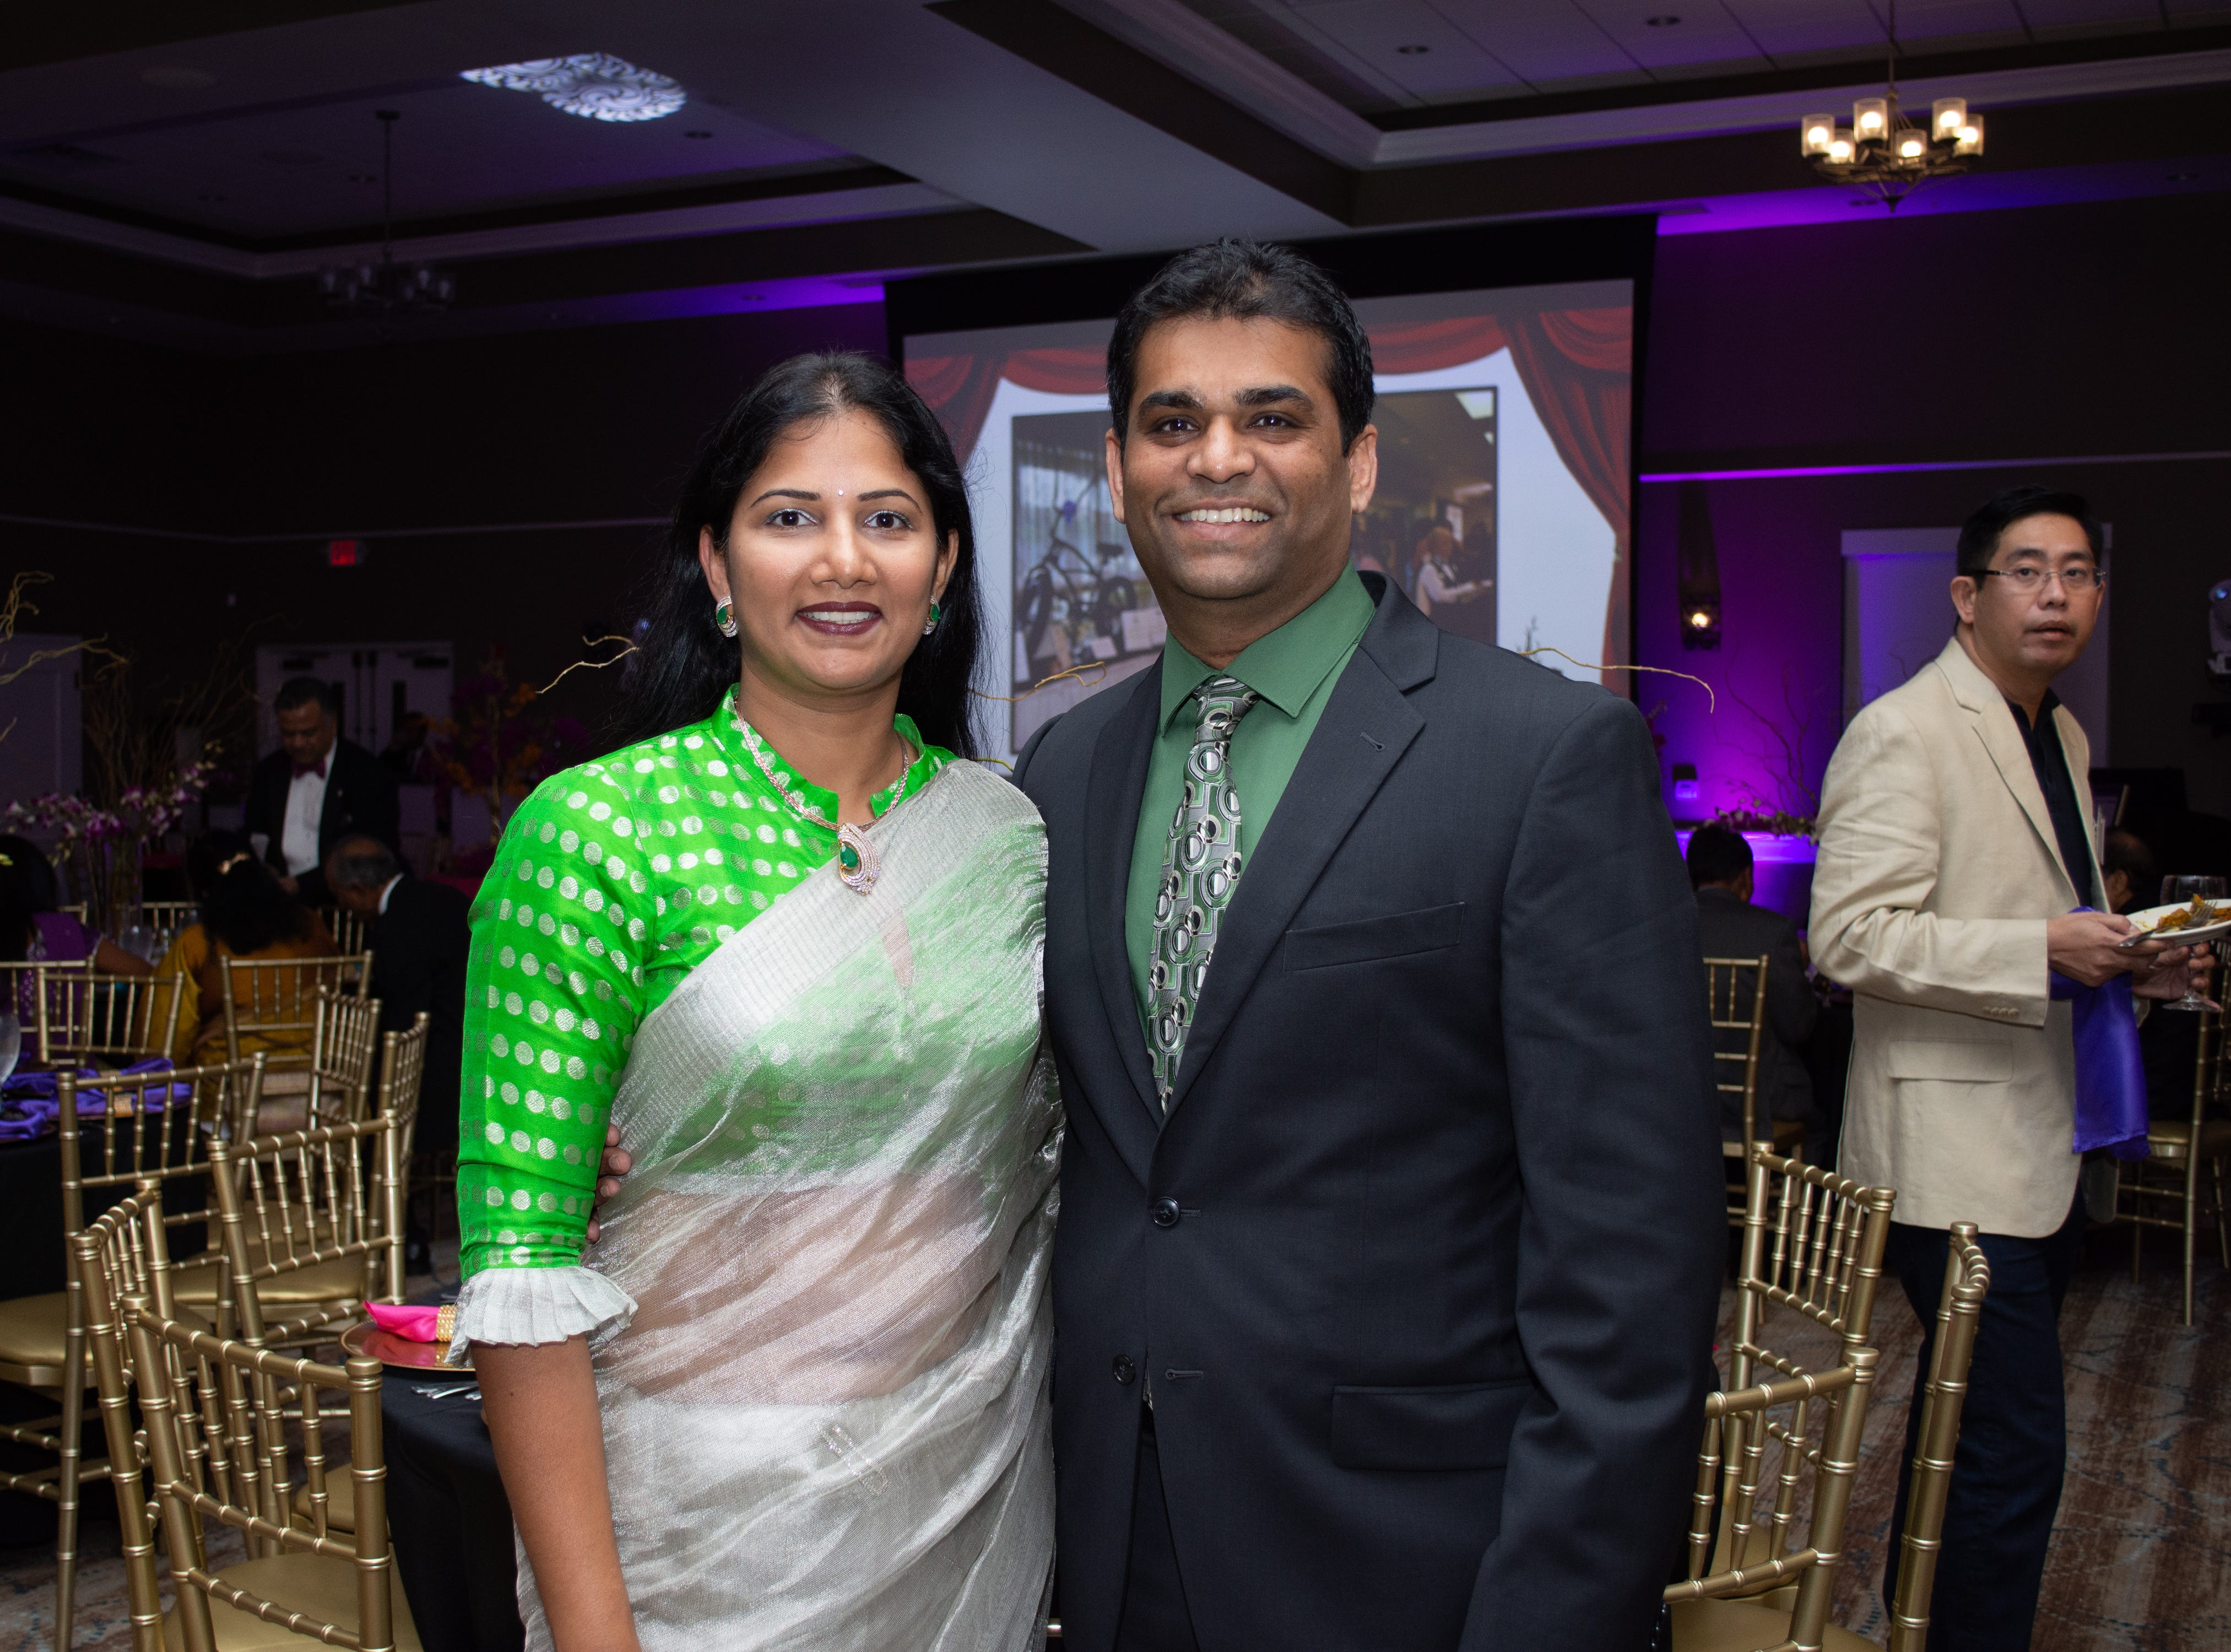 Photos from the 2018 BIMDA annual dinner and awards ceremony.